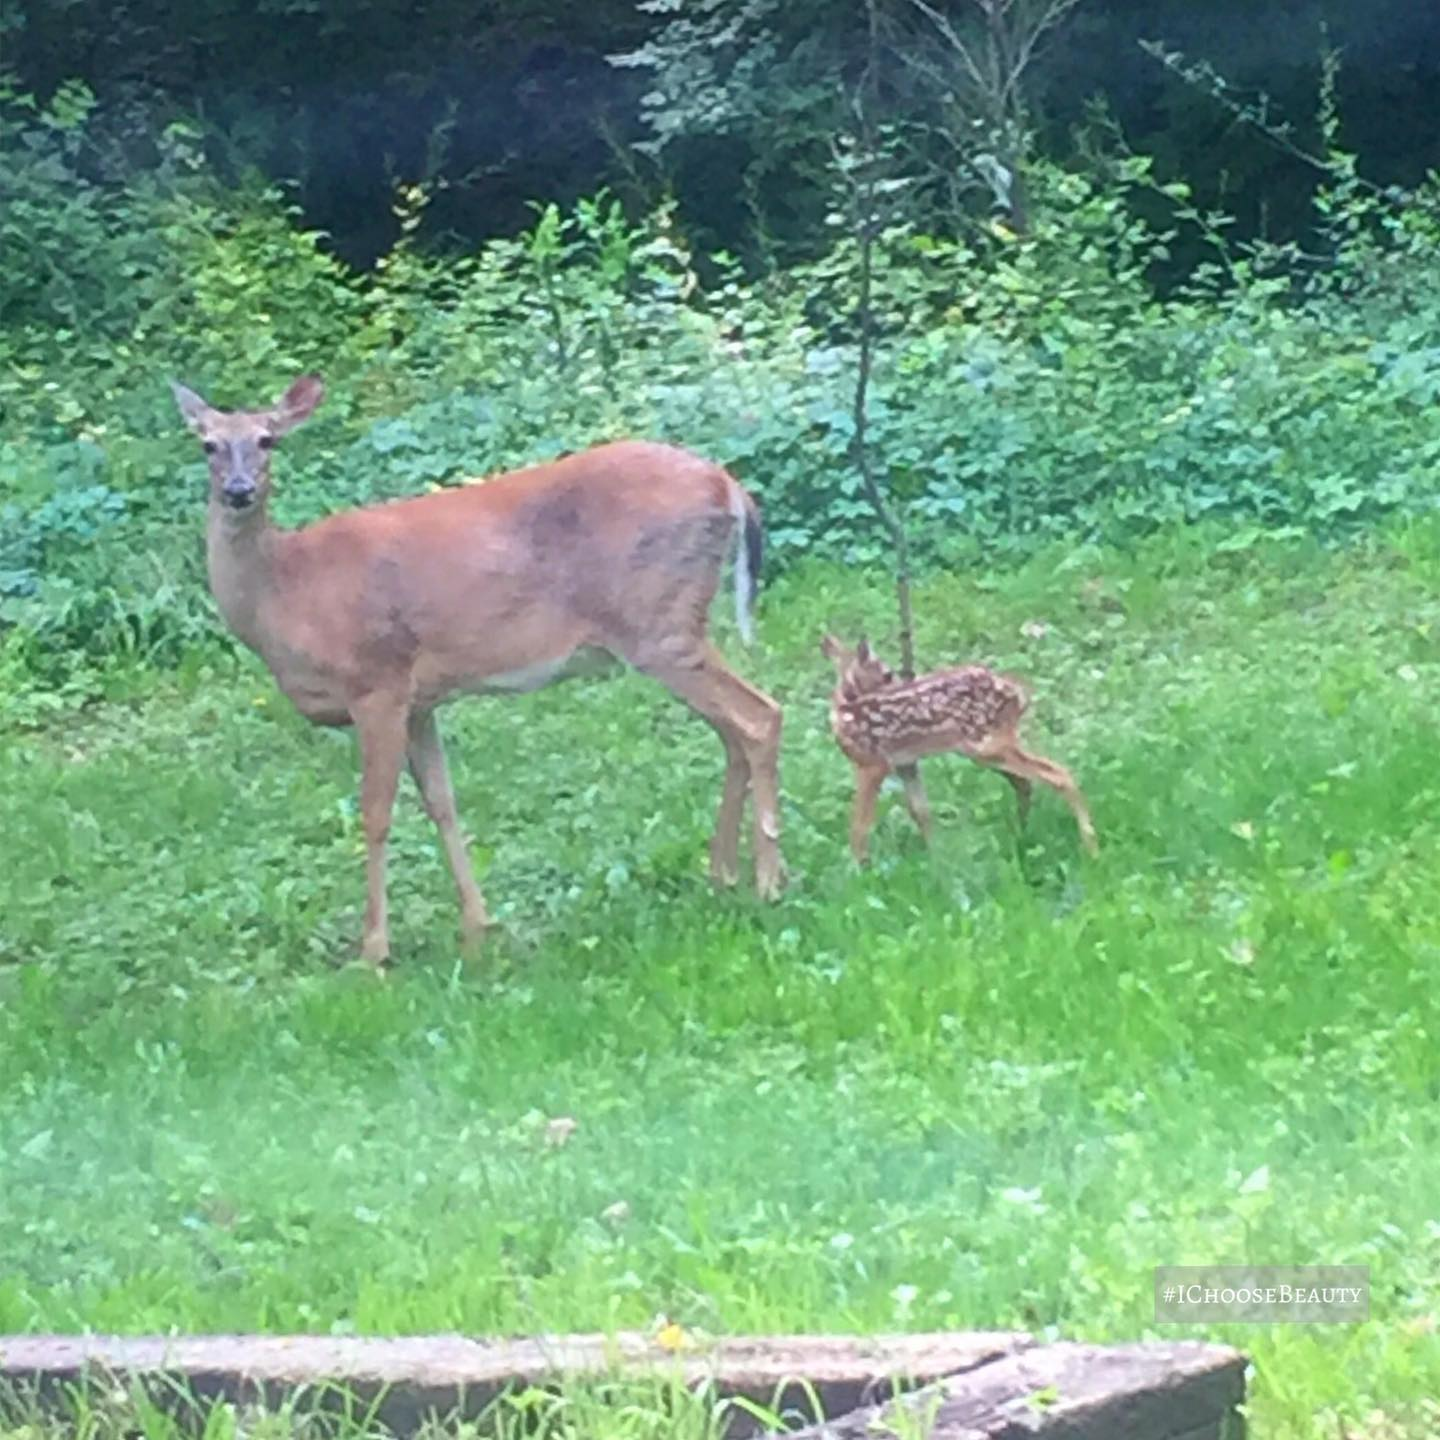 OMGGGGGG look at who came our backyard to say hello to me this morning!! ️️️ I'm in love with the little spotted bebe, even though he turned his head in the photo.  #ichoosebeauty Day 2757